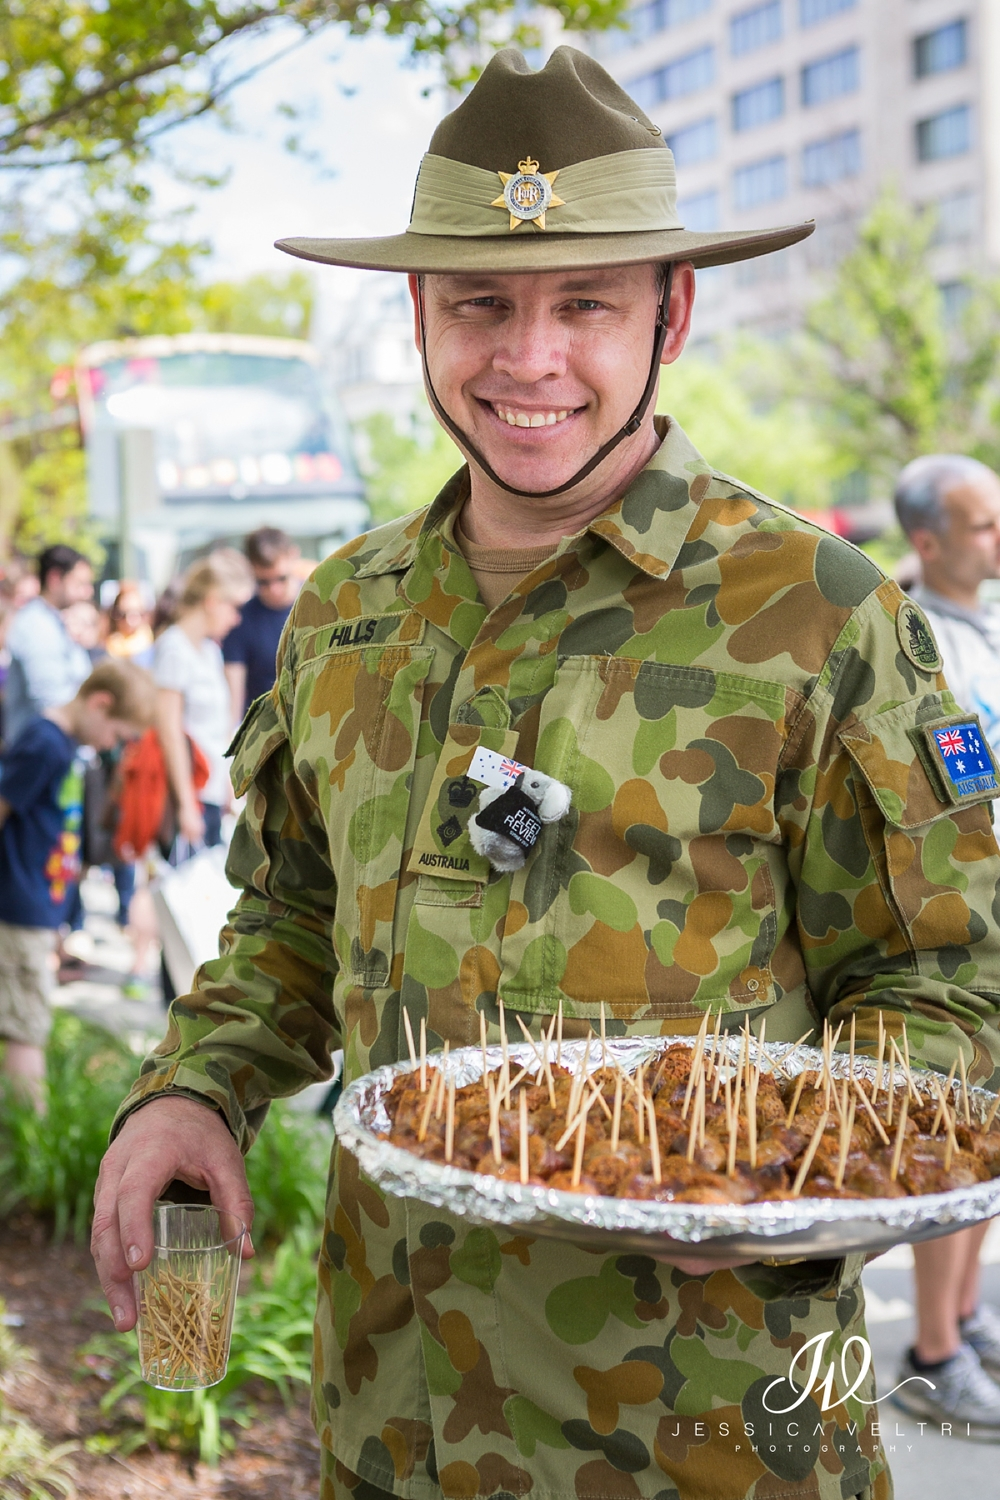 Aussie serving sausage samples to the long line outside the Australian Embassy